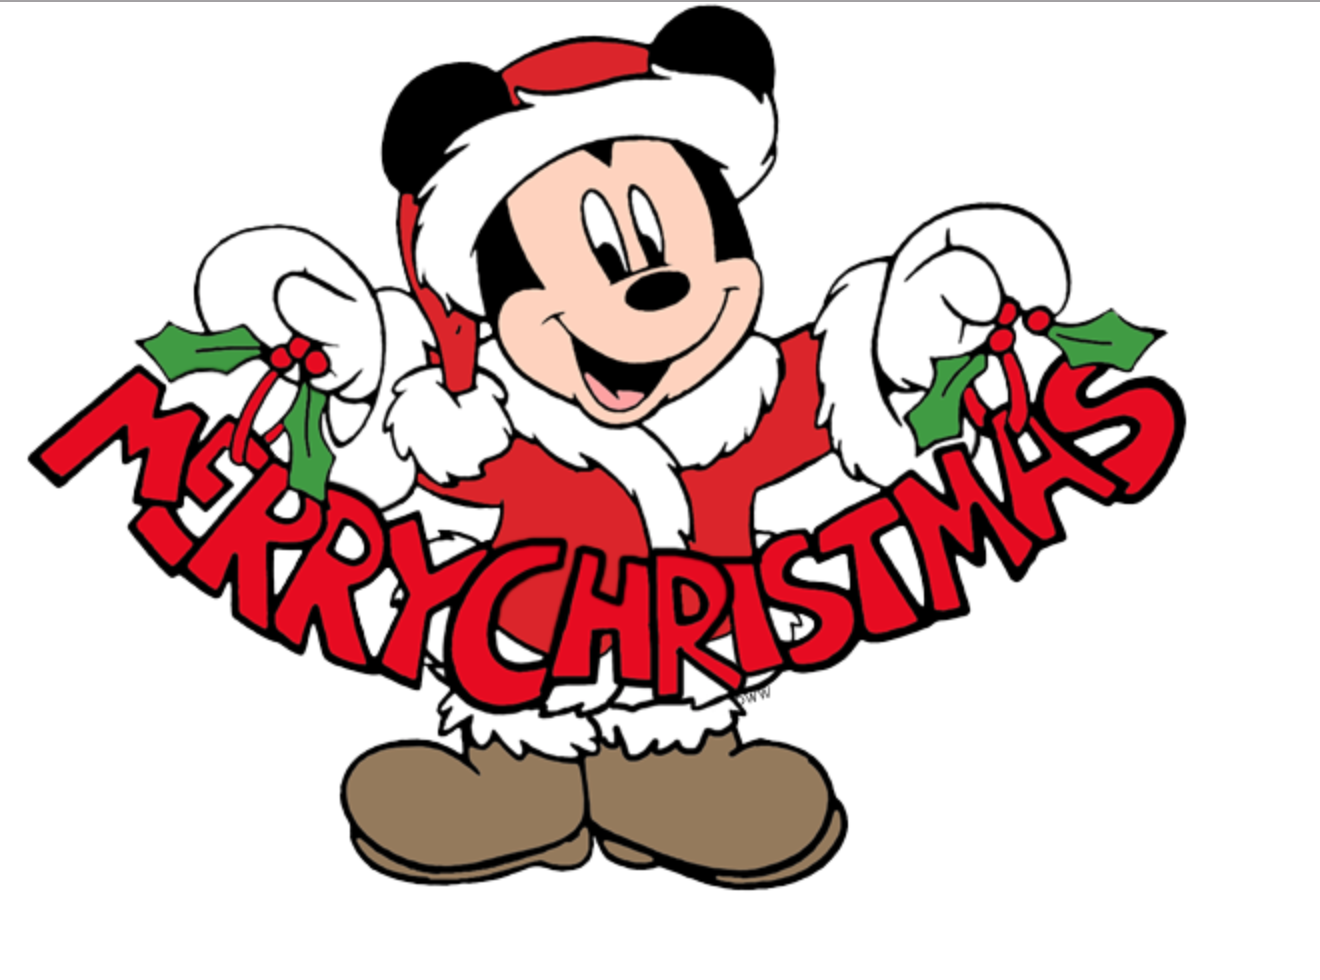 Mickey Mouse wishes a Merry Christmas Disney merry